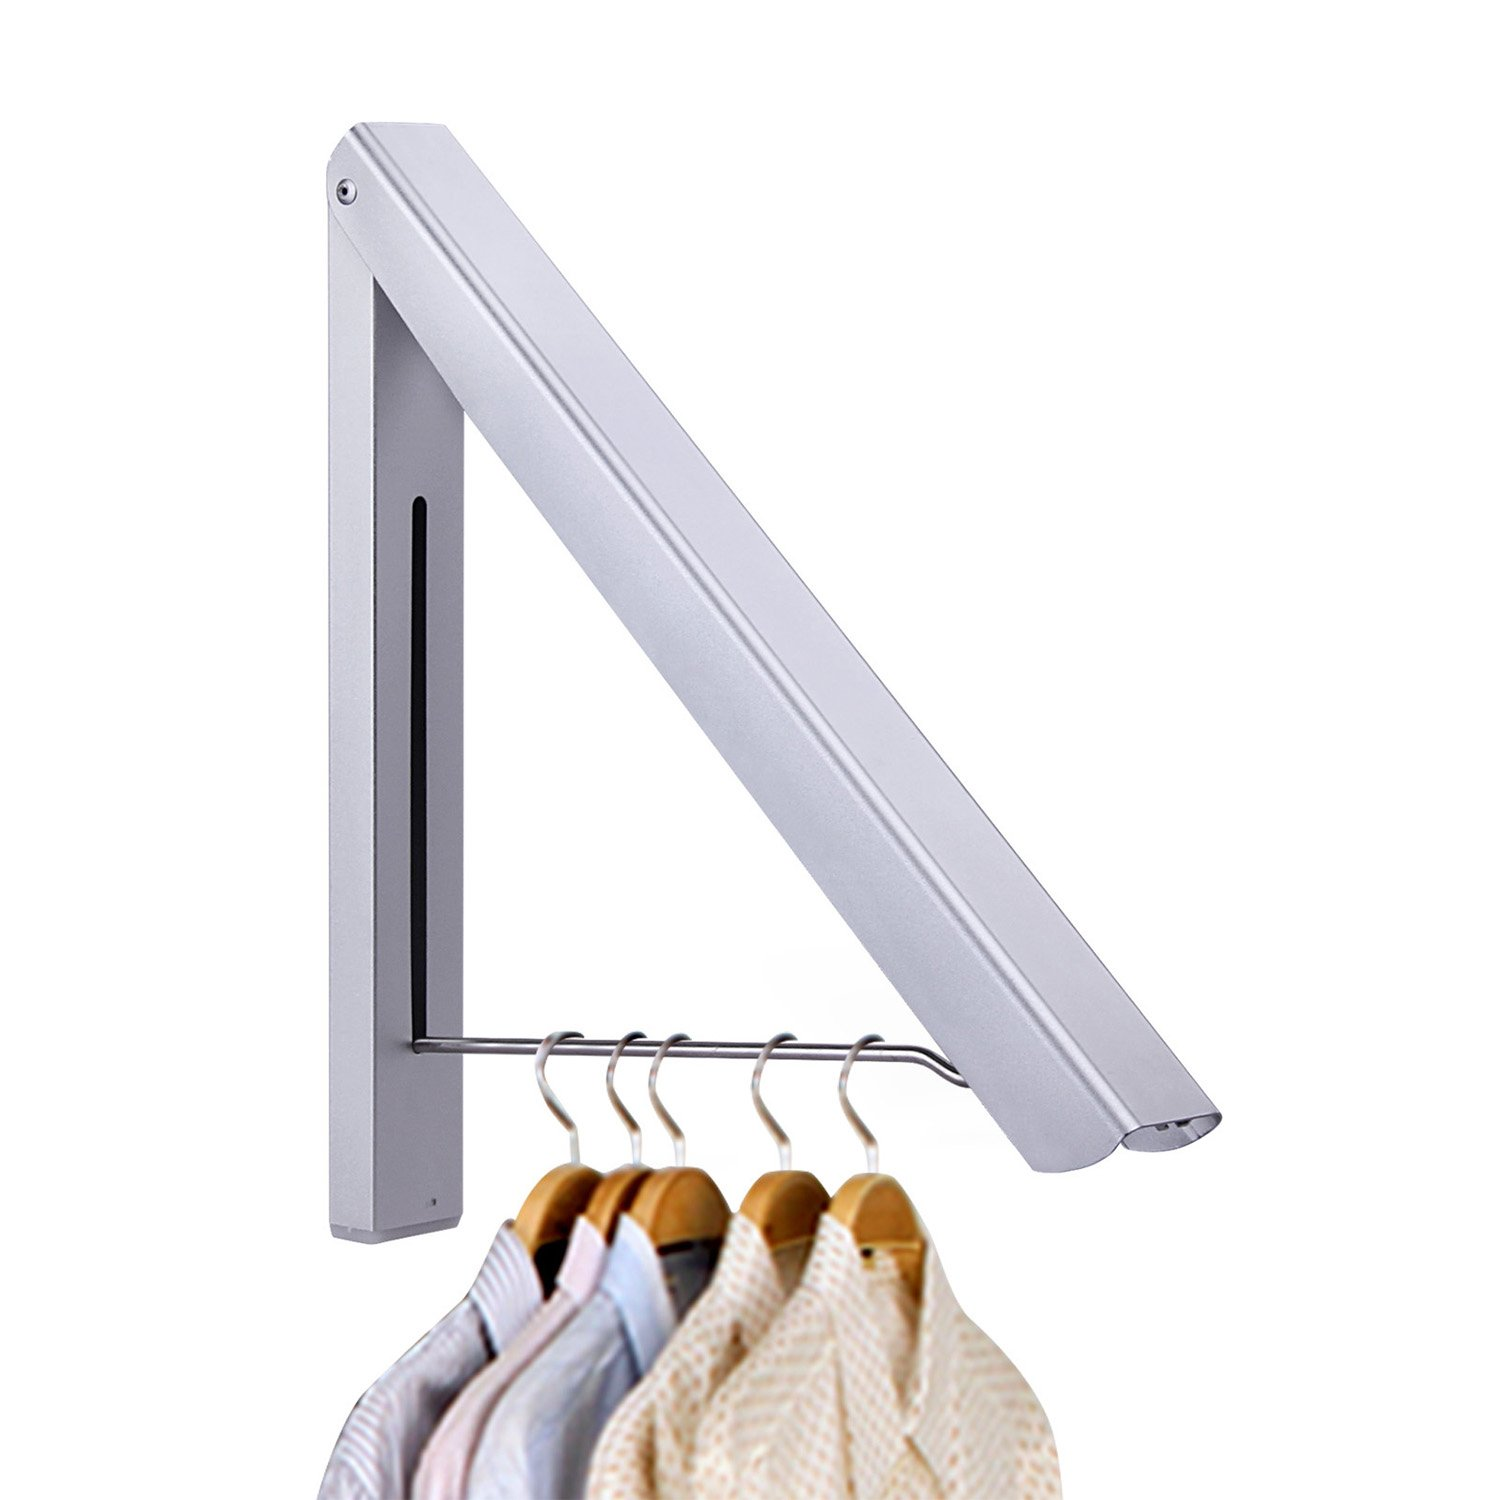 Aluminium Alloy Clothes Hanging System Free-Screw and Screwed Two-Way Installation Clothes Hanger by a (Image #1)